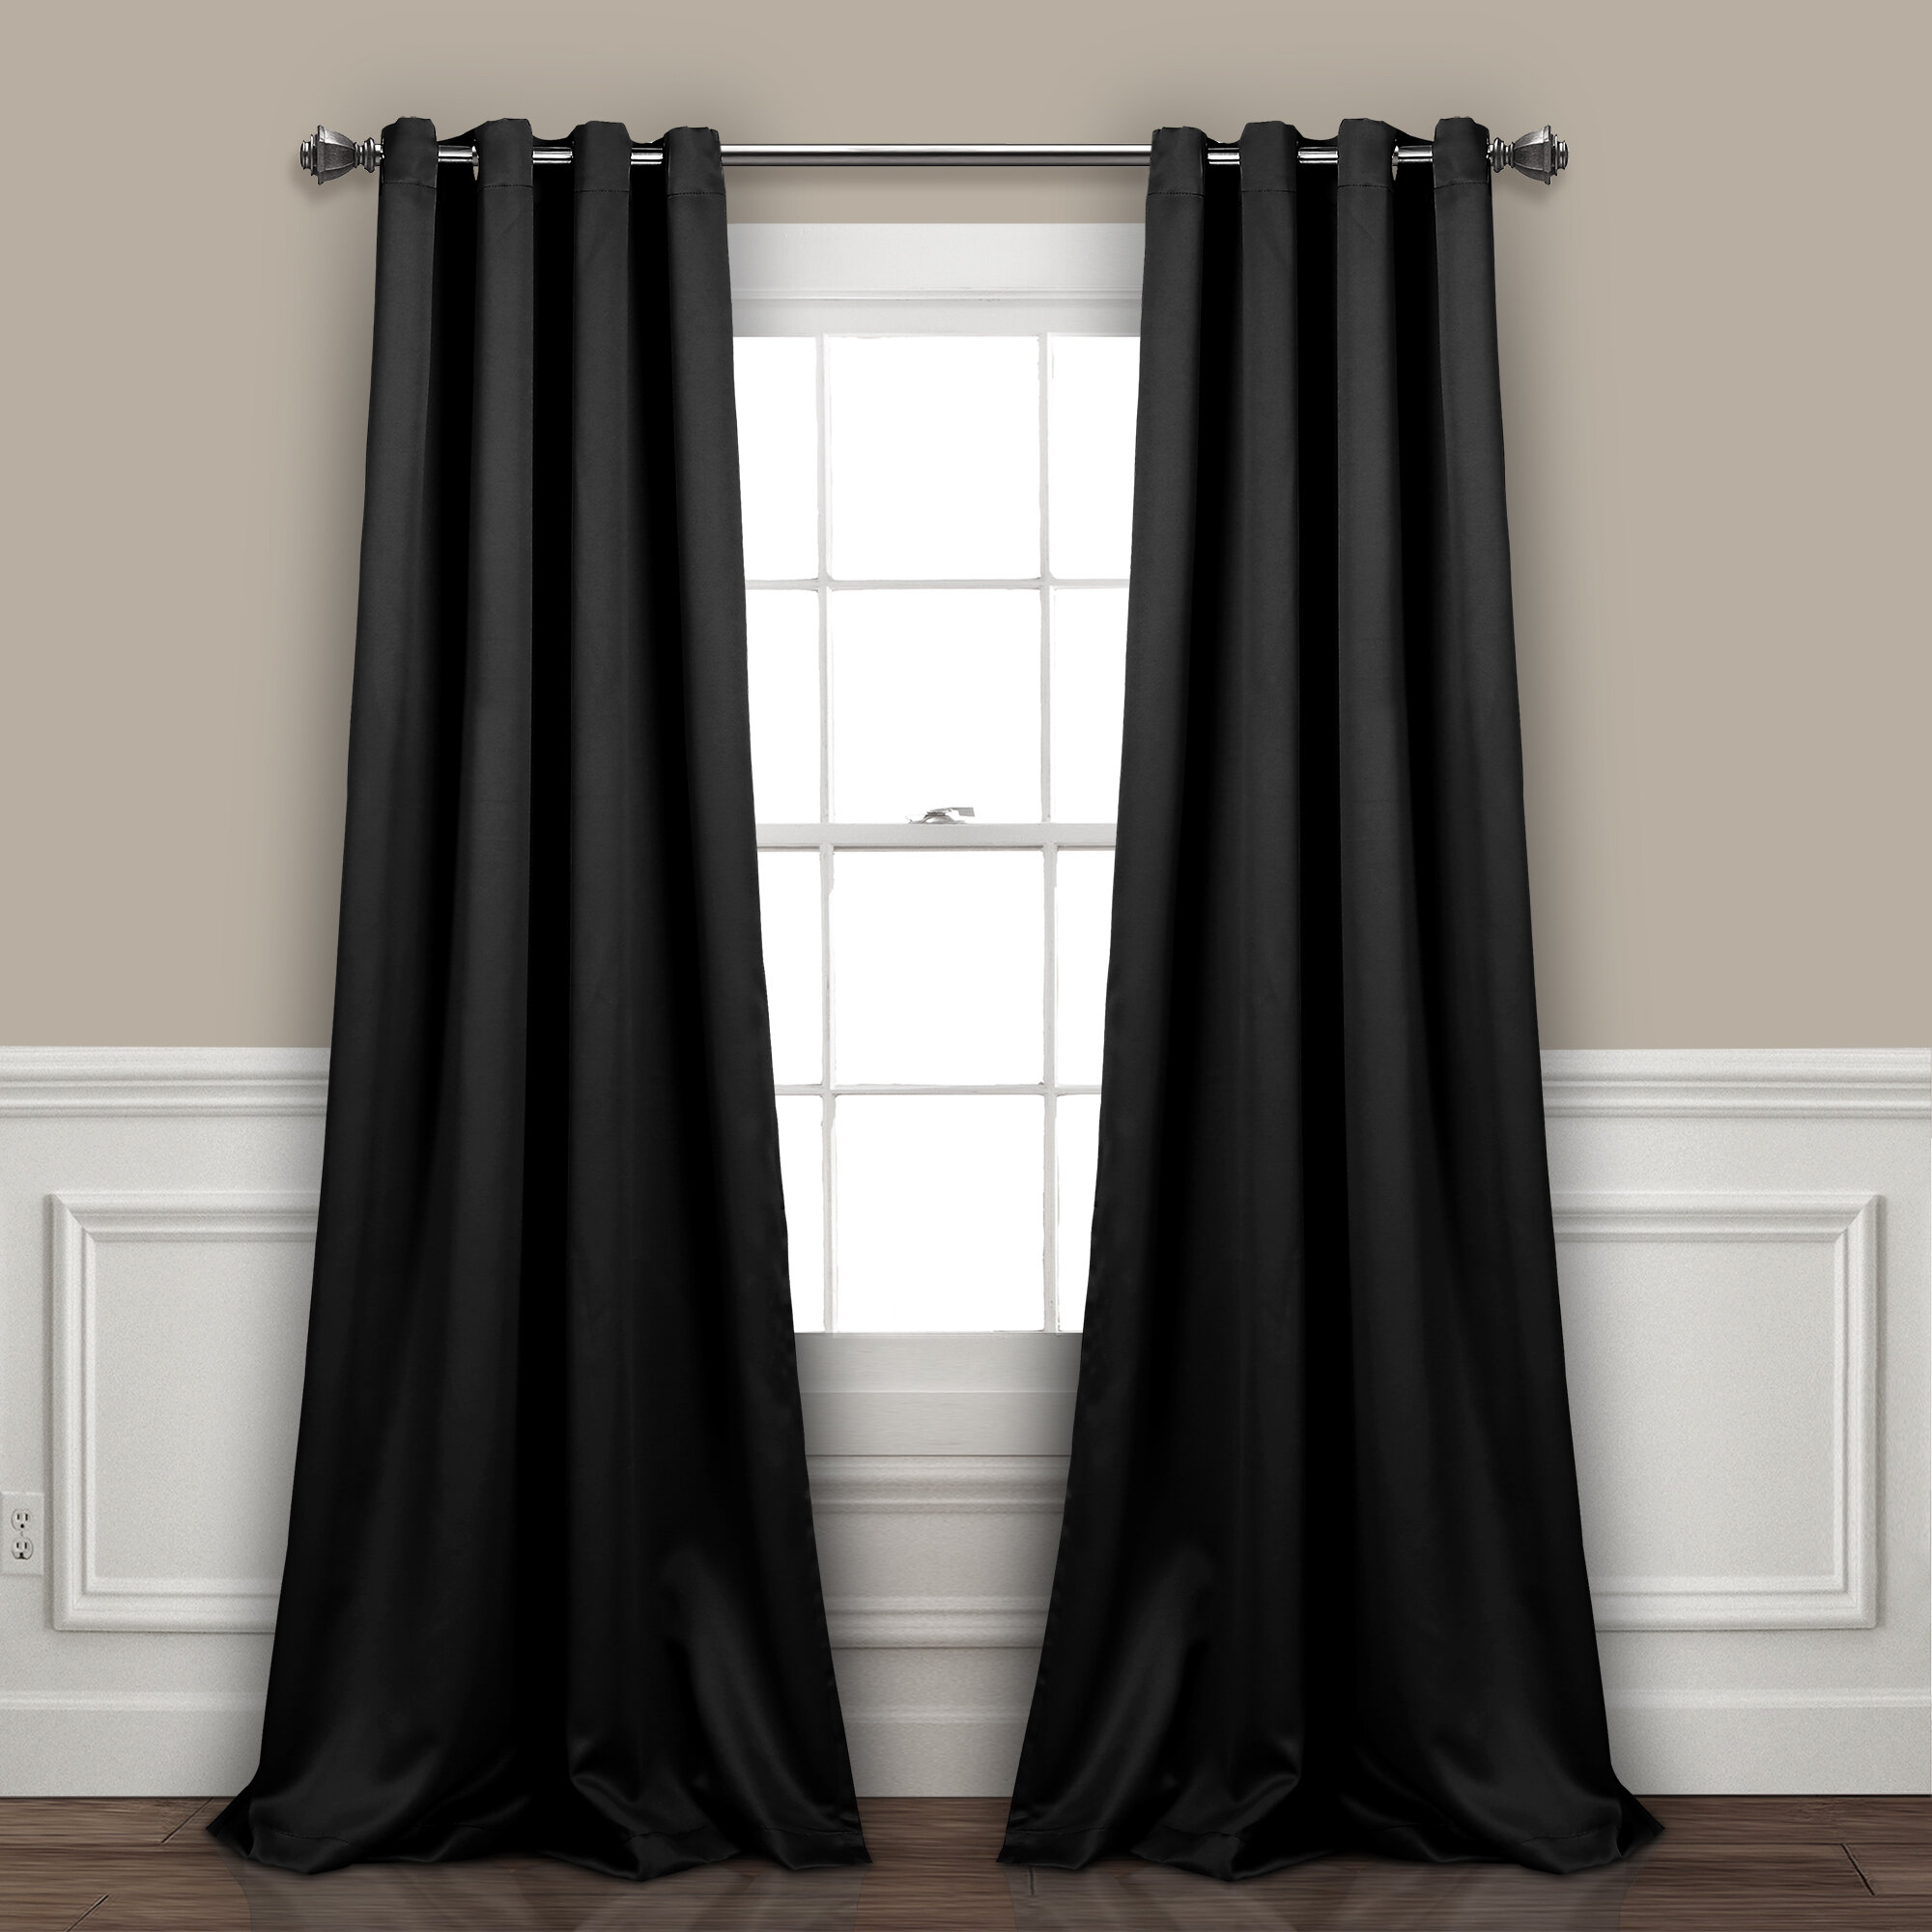 Ketterman Solid Thermal Blackout Grommet Window Panel Pair Pertaining To Solid Insulated Thermal Blackout Curtain Panel Pairs (Gallery 26 of 30)